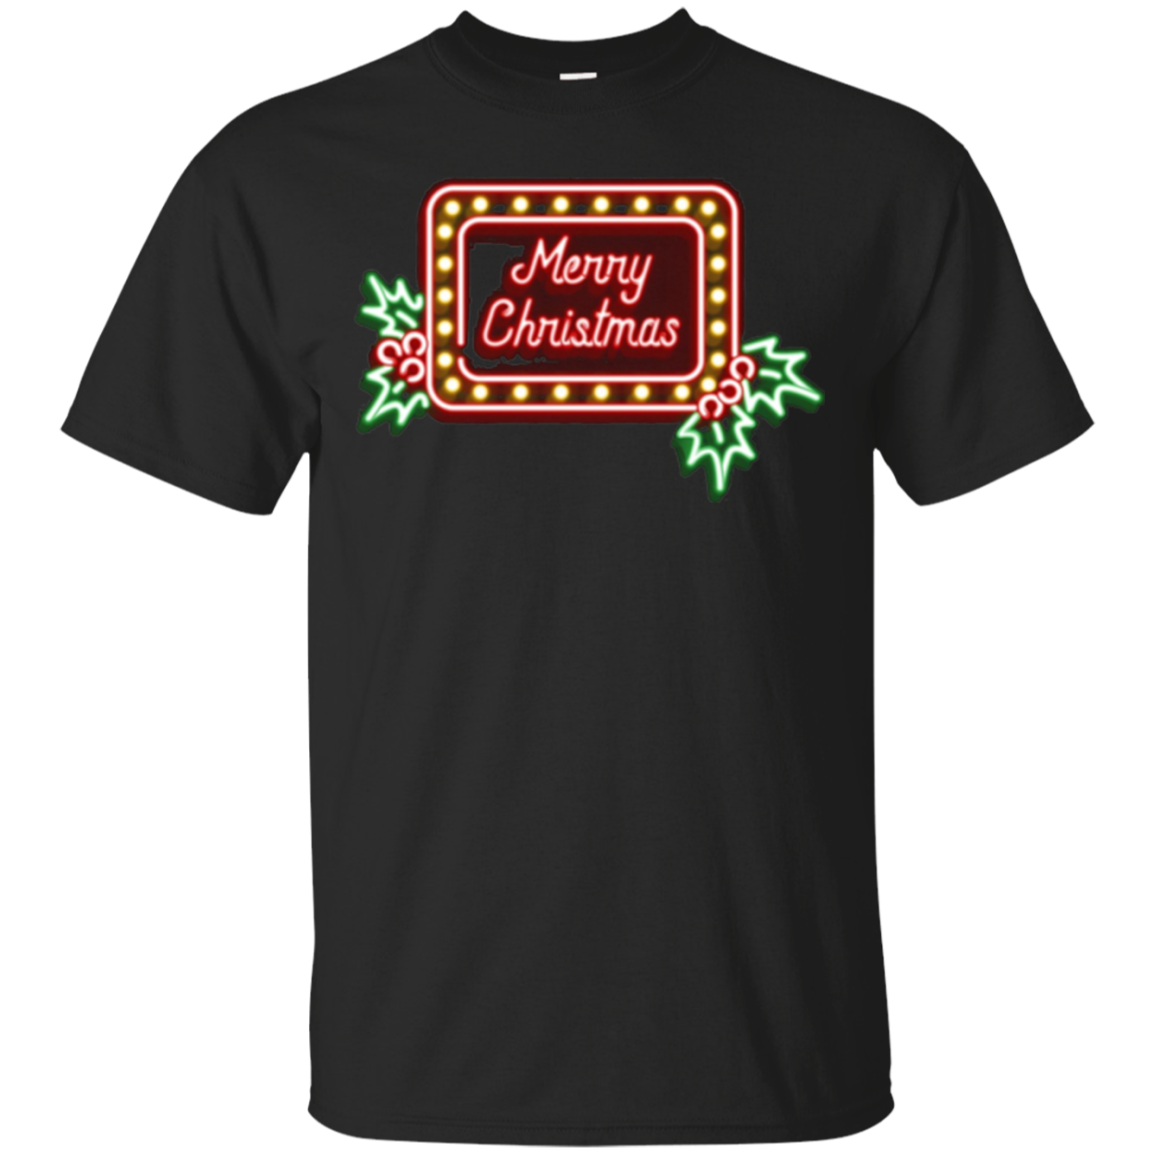 Christmas Gift Shirt for Her Him Merry Christmas Neon Sign